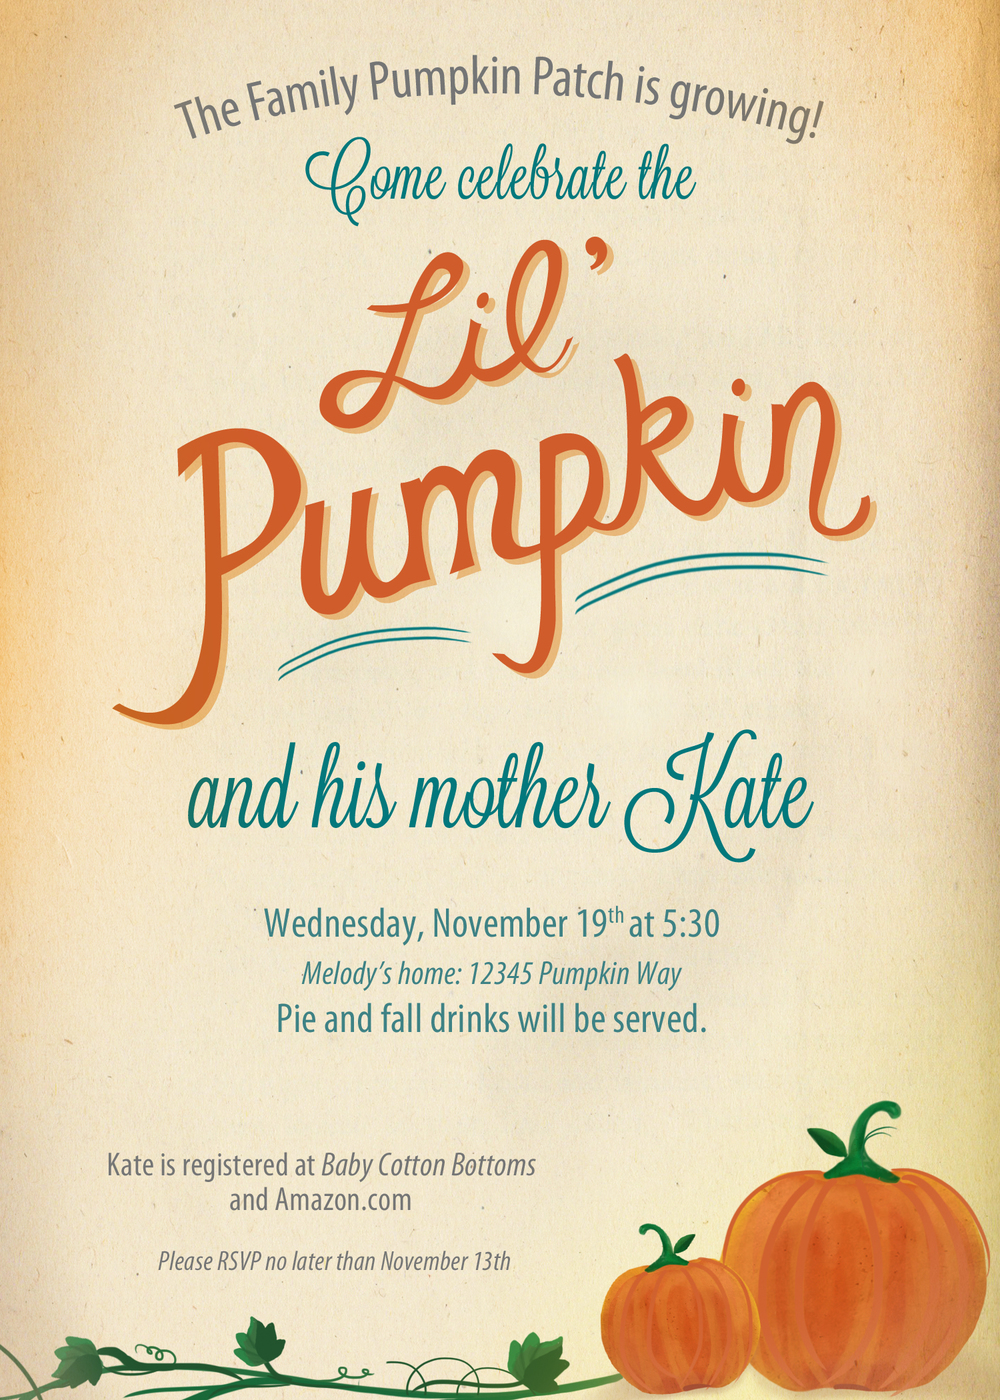 Lil Pumpkin baby shower invitation | by finicky designs